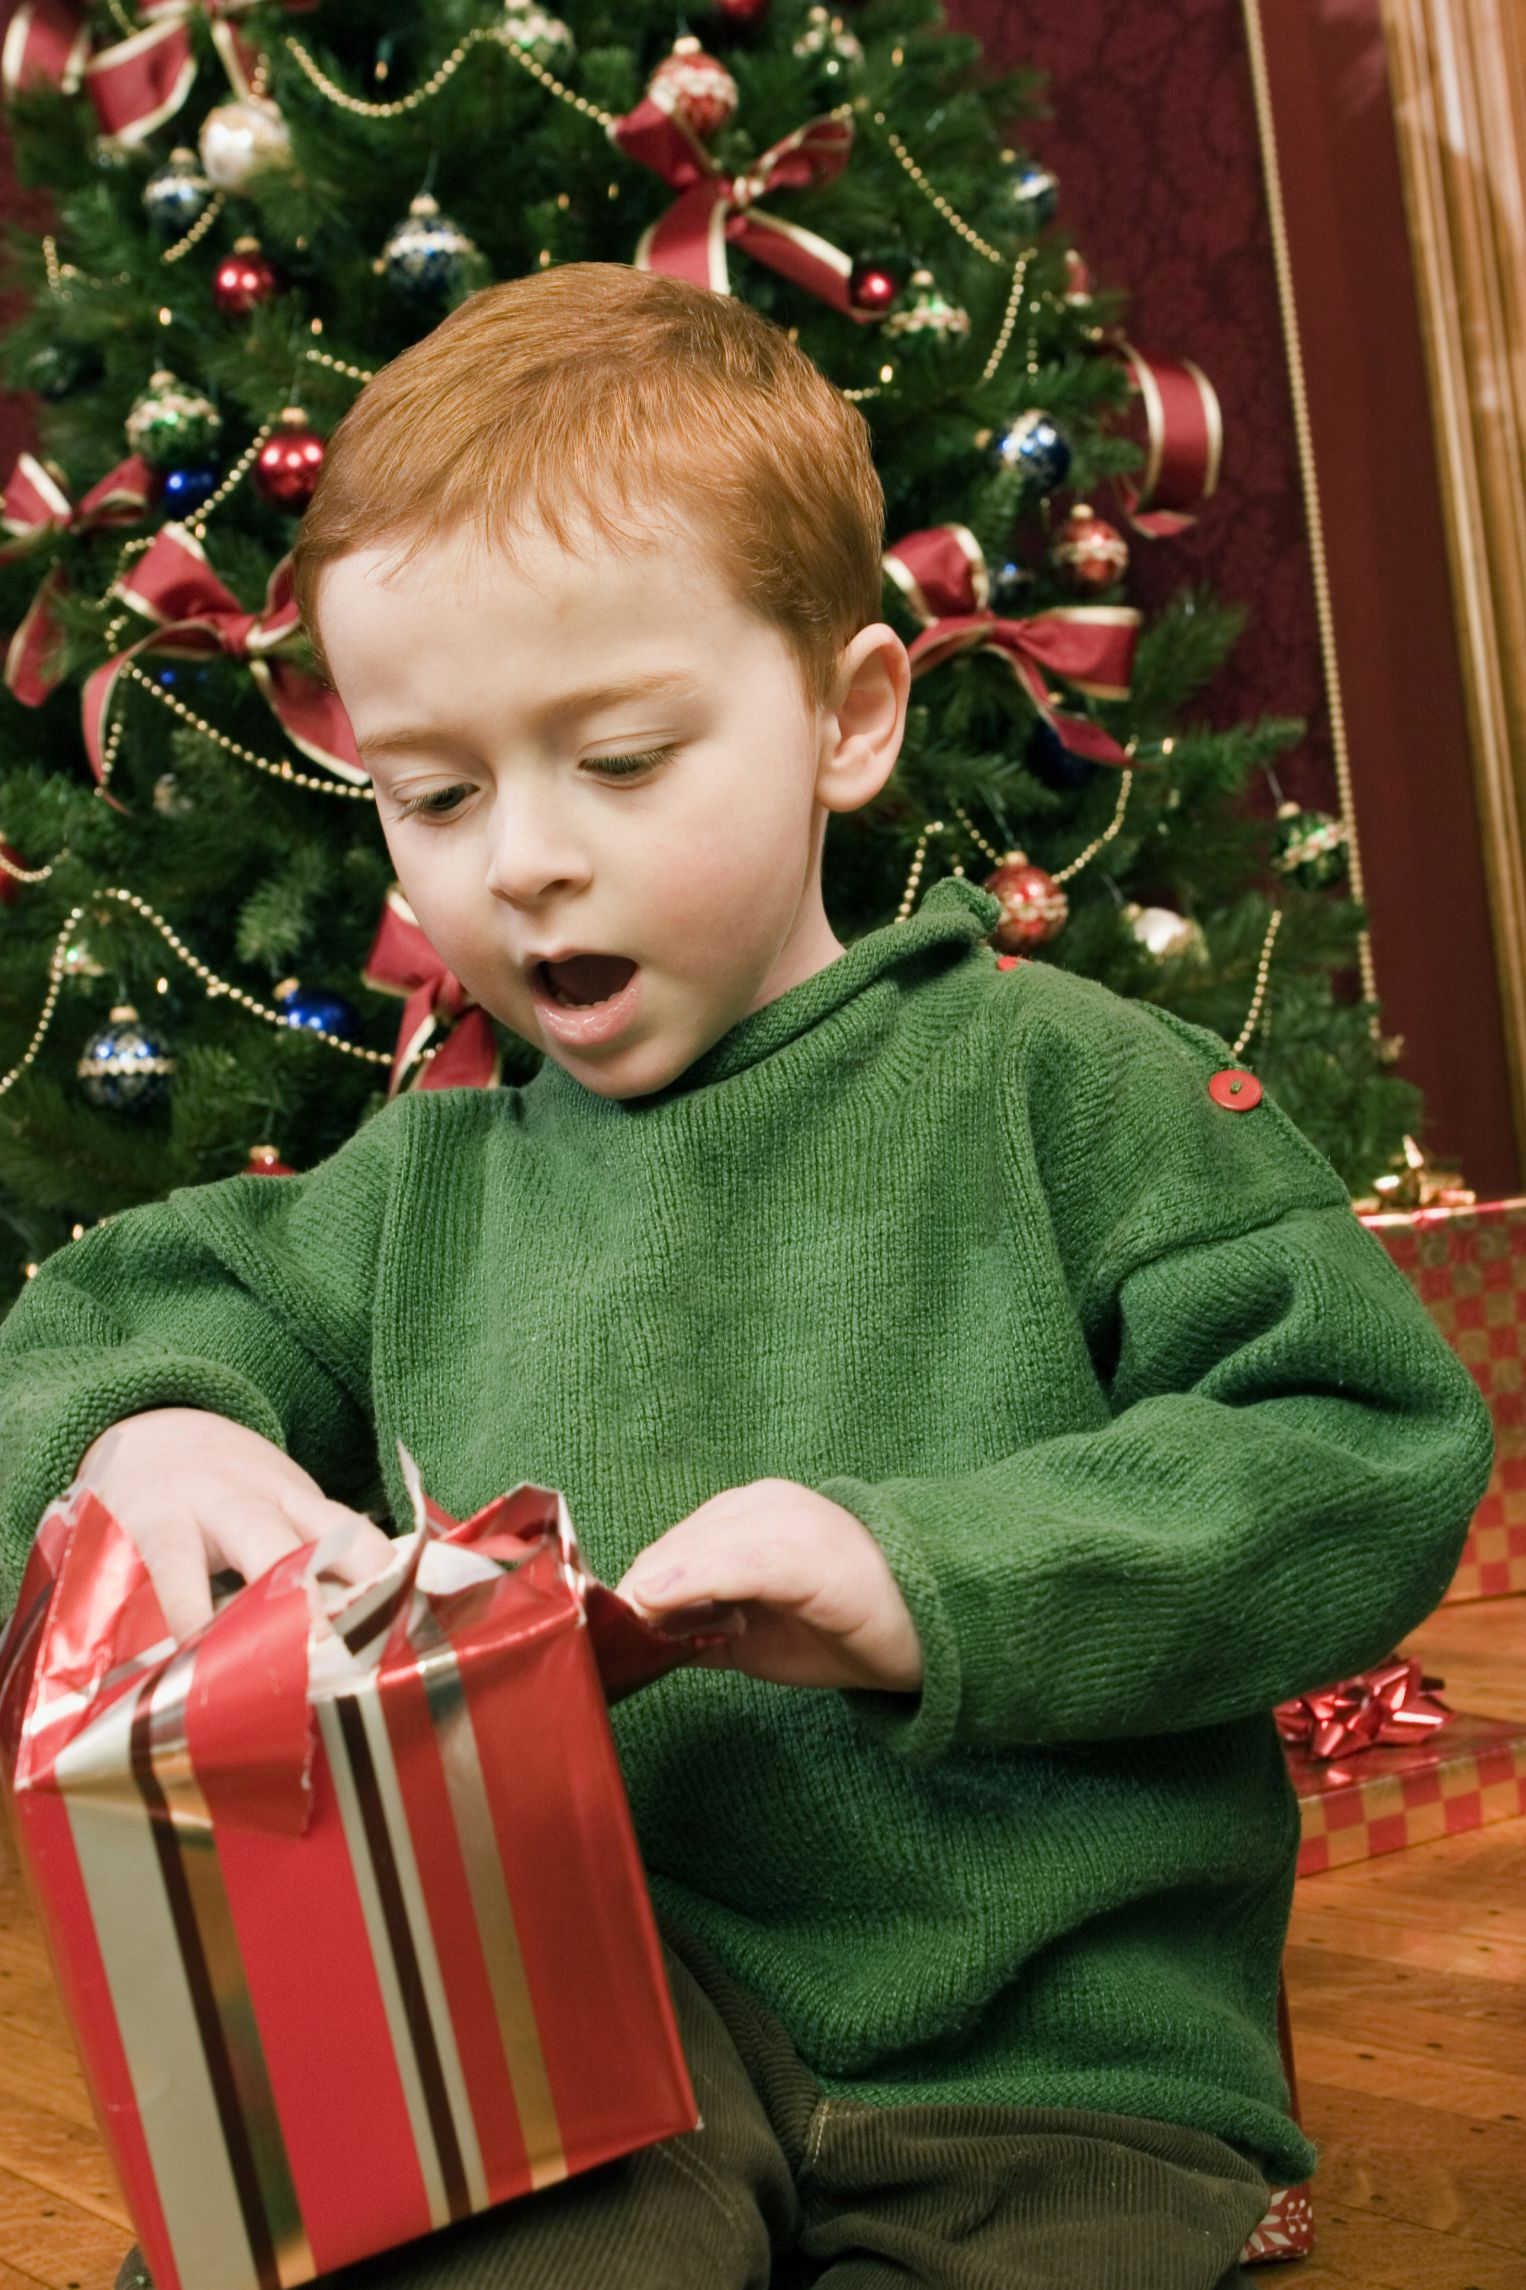 children opening christmas presents - Google Search | Christmas ...